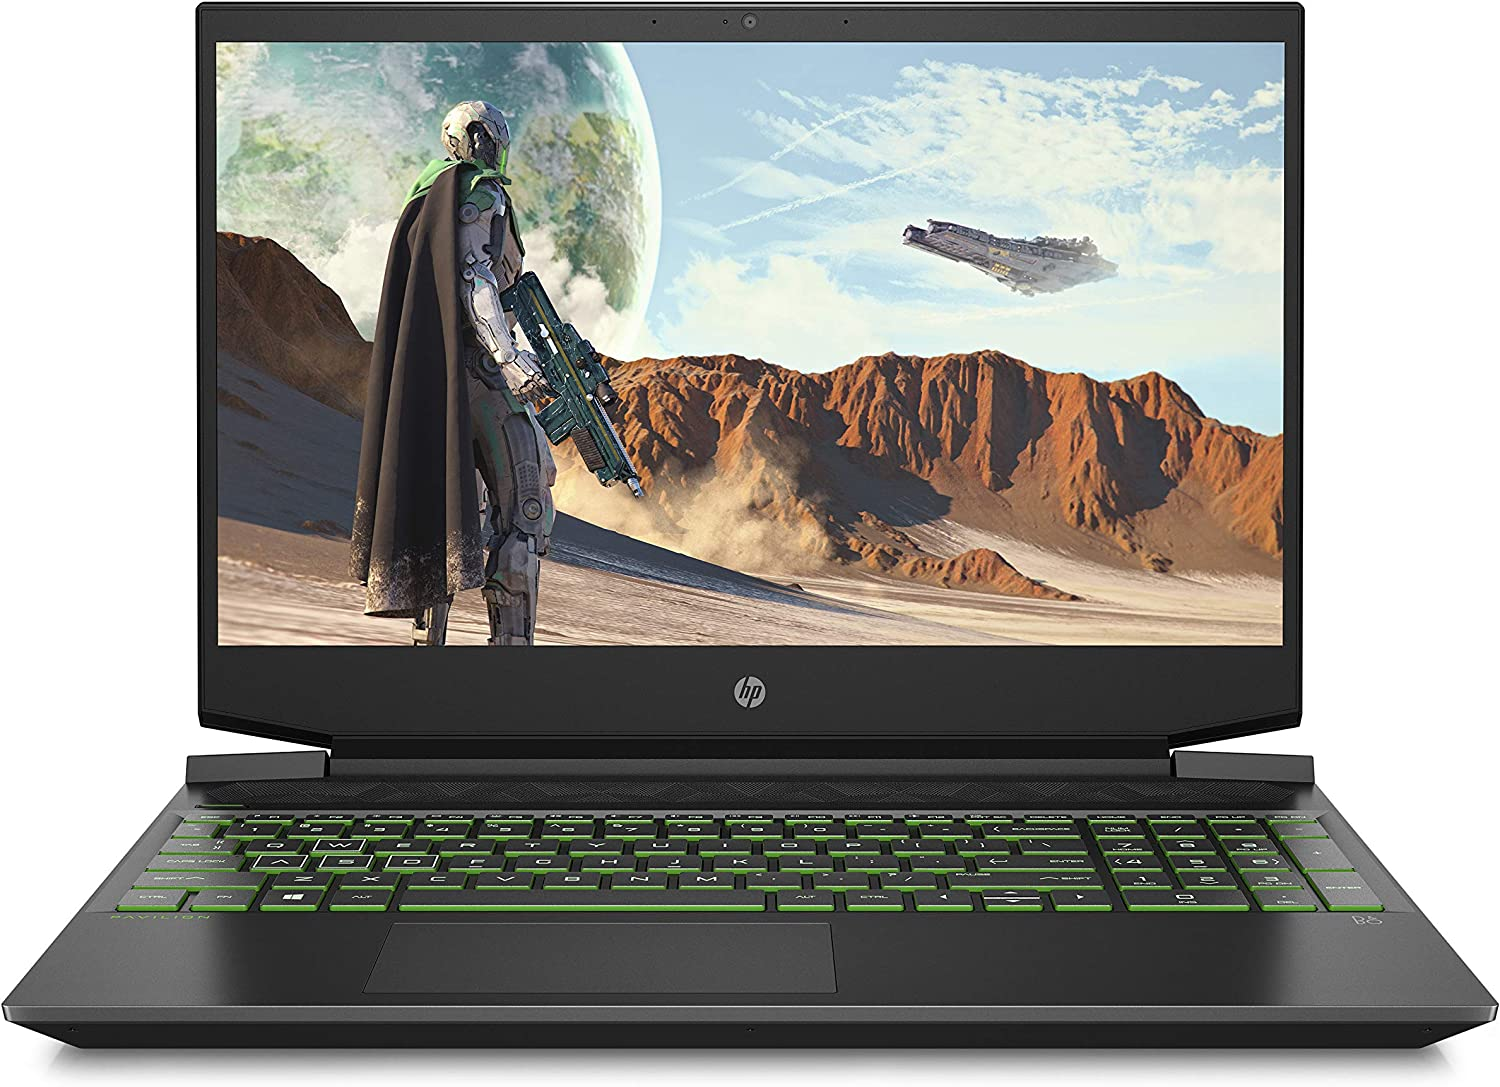 HP Pavilion Gaming 2019 15-Inch Micro-Edge Laptop, AMD Ryzen 5 3550H, NVIDIA GeForce GTX 1050 (3 GB), 8 GB RAM, 512 GB Solid-State Drive, Windows 10 Home (15-ec0010nr, Shadow Black), (15-ec-0010nr)